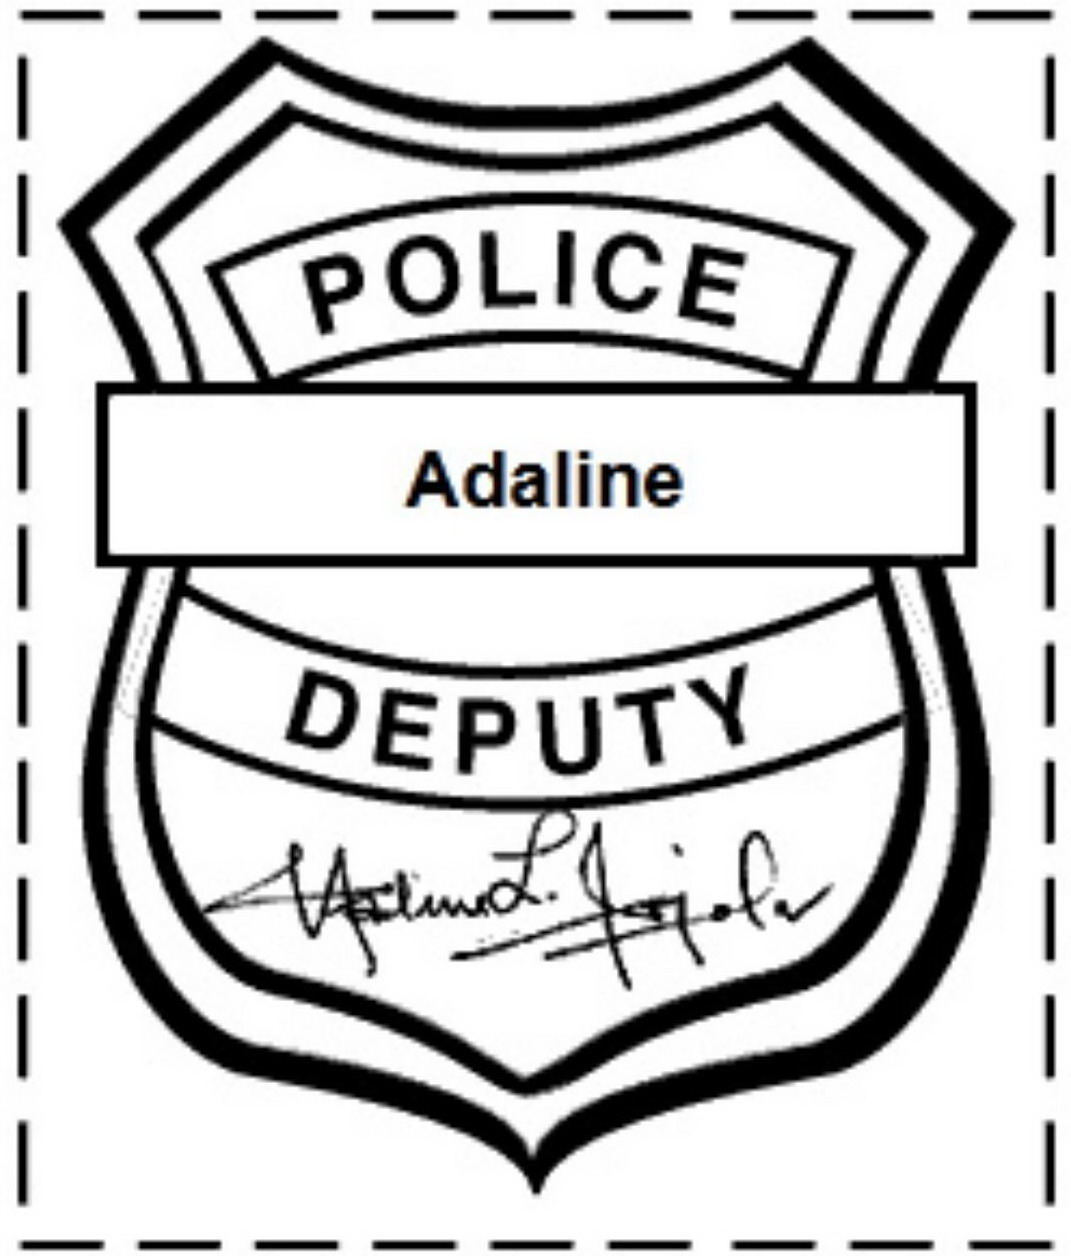 Police badge outline clipart banner black and white library Police badge outline clipart kid 2 - Clipartix banner black and white library